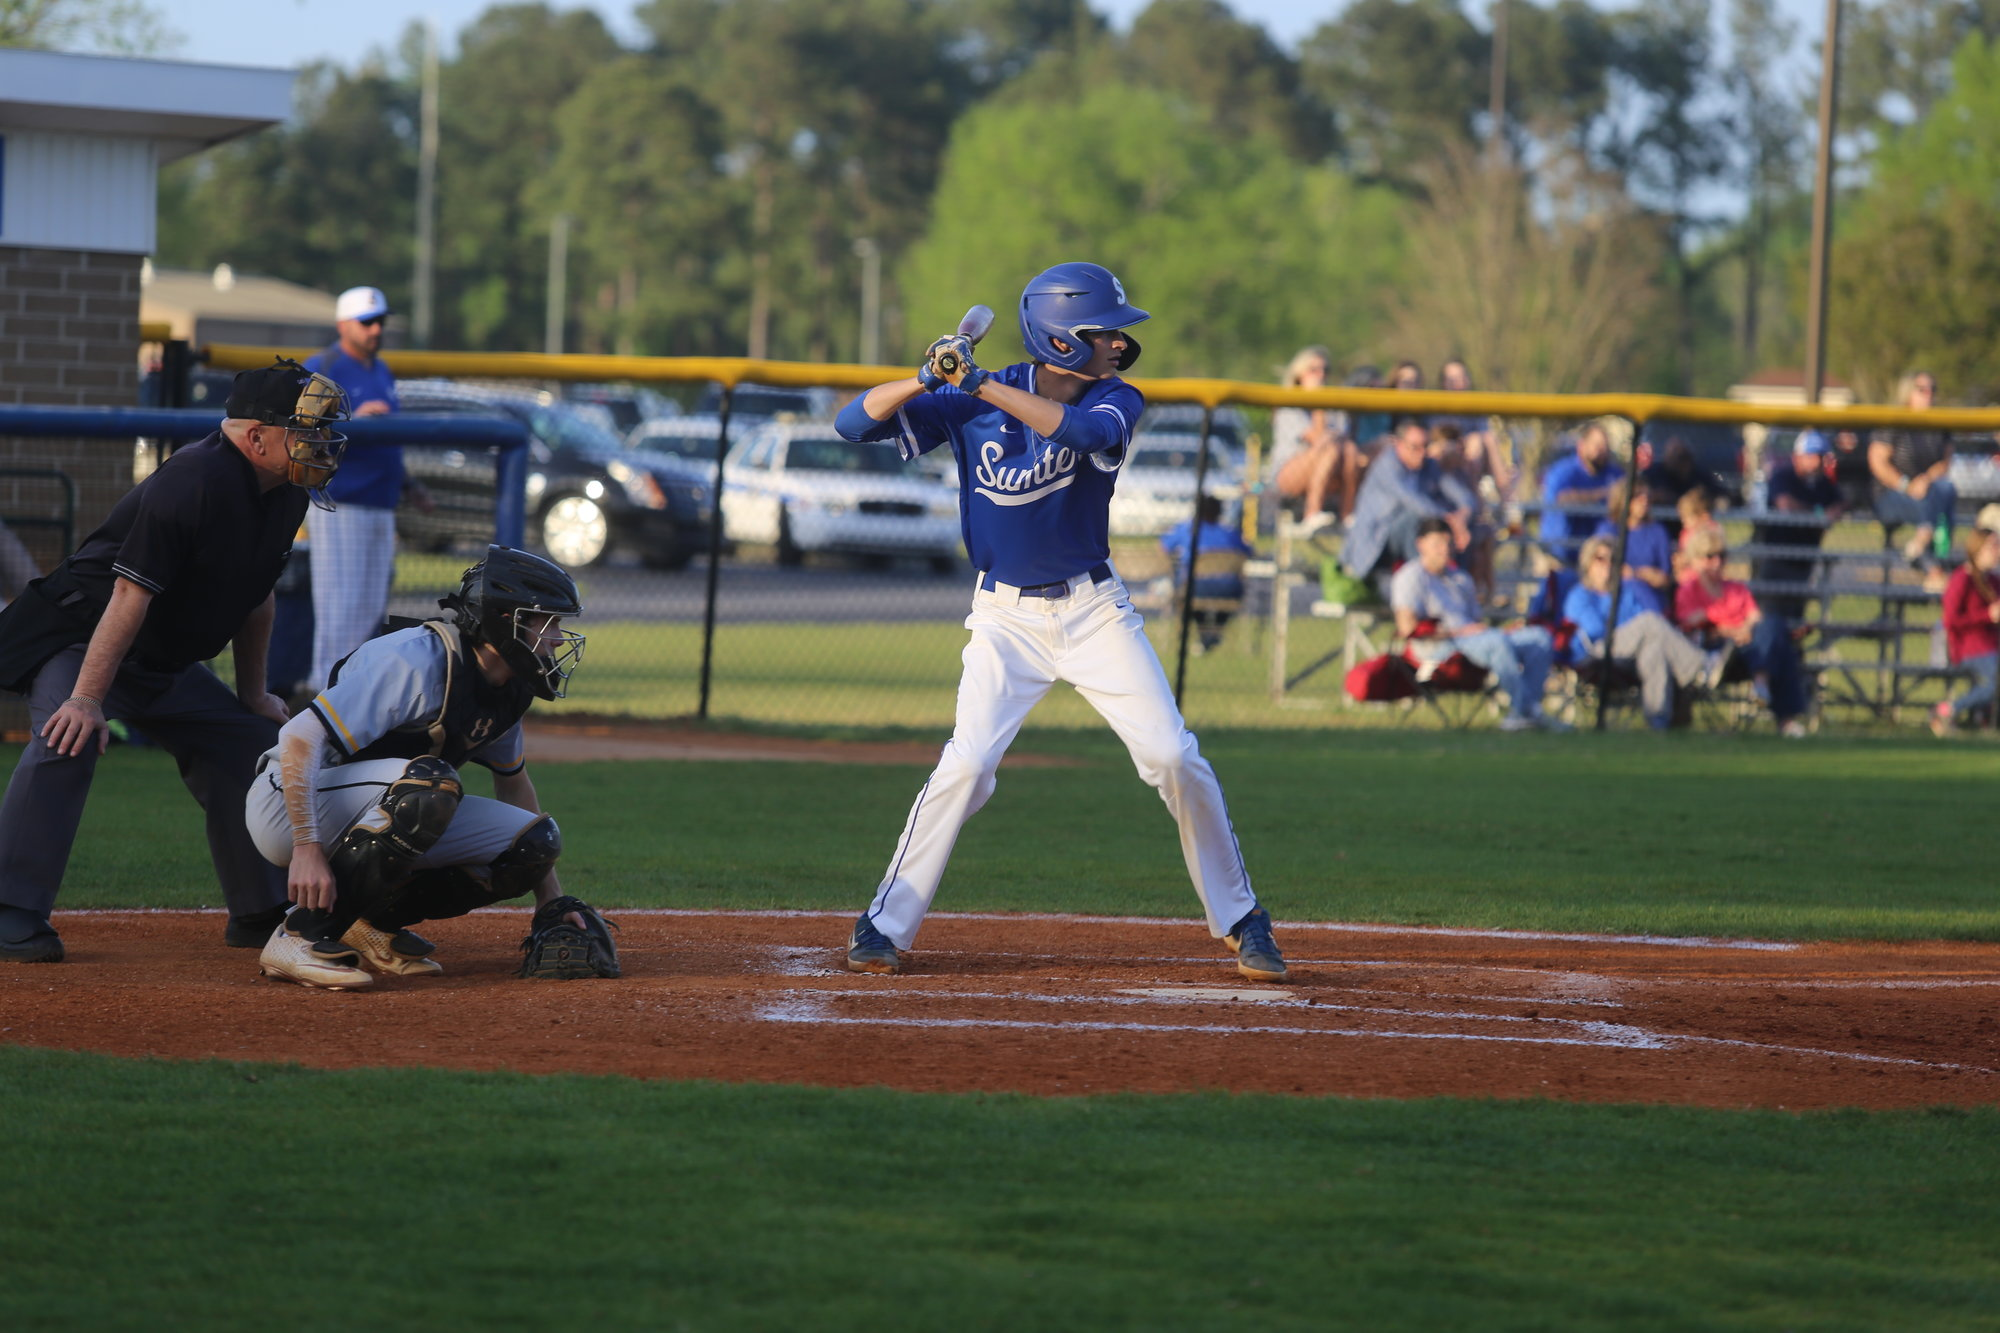 Sumter's Bryce Lyons digs in at the plate.